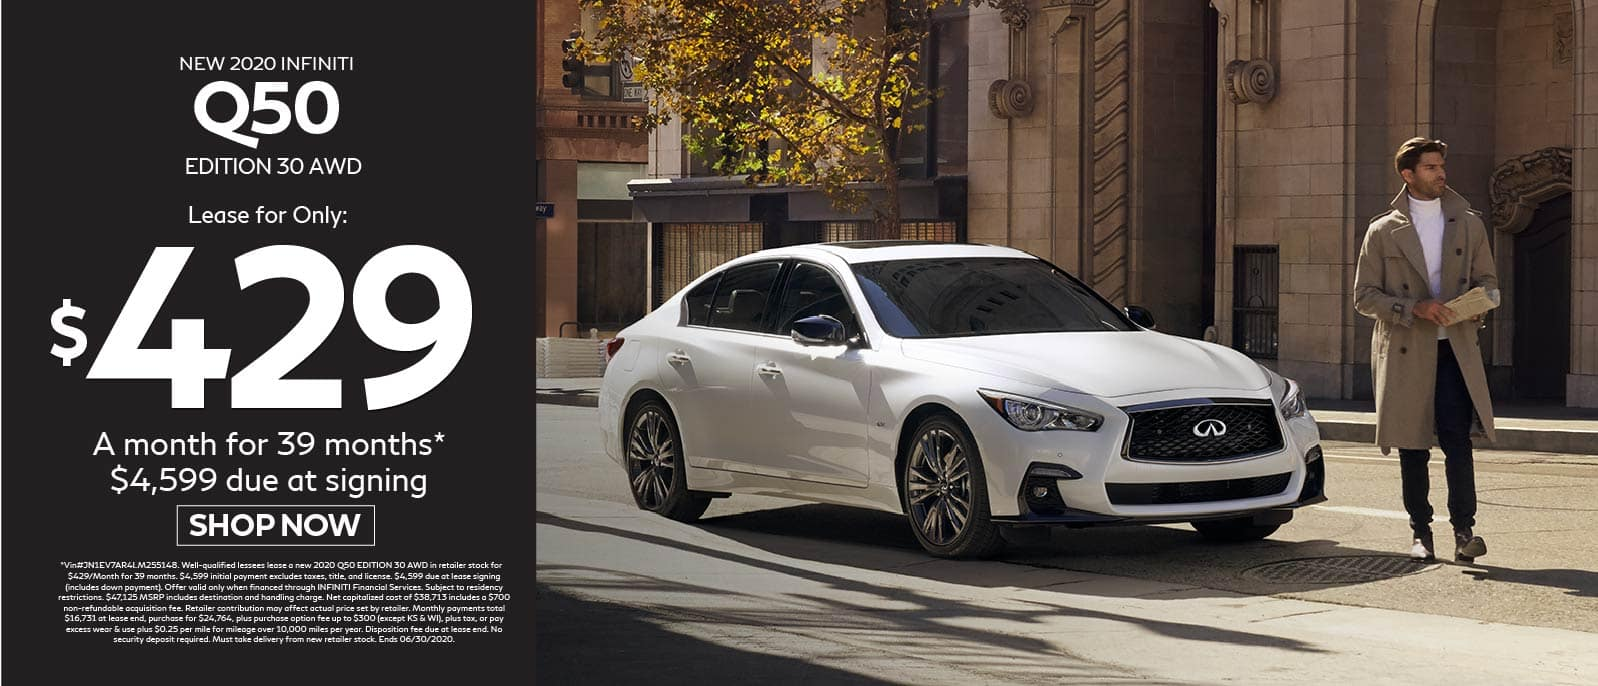 2020 INFINITI Q50 Edition 30 AWD $429 a month for 39 months $4599 due at signing. Shop now.